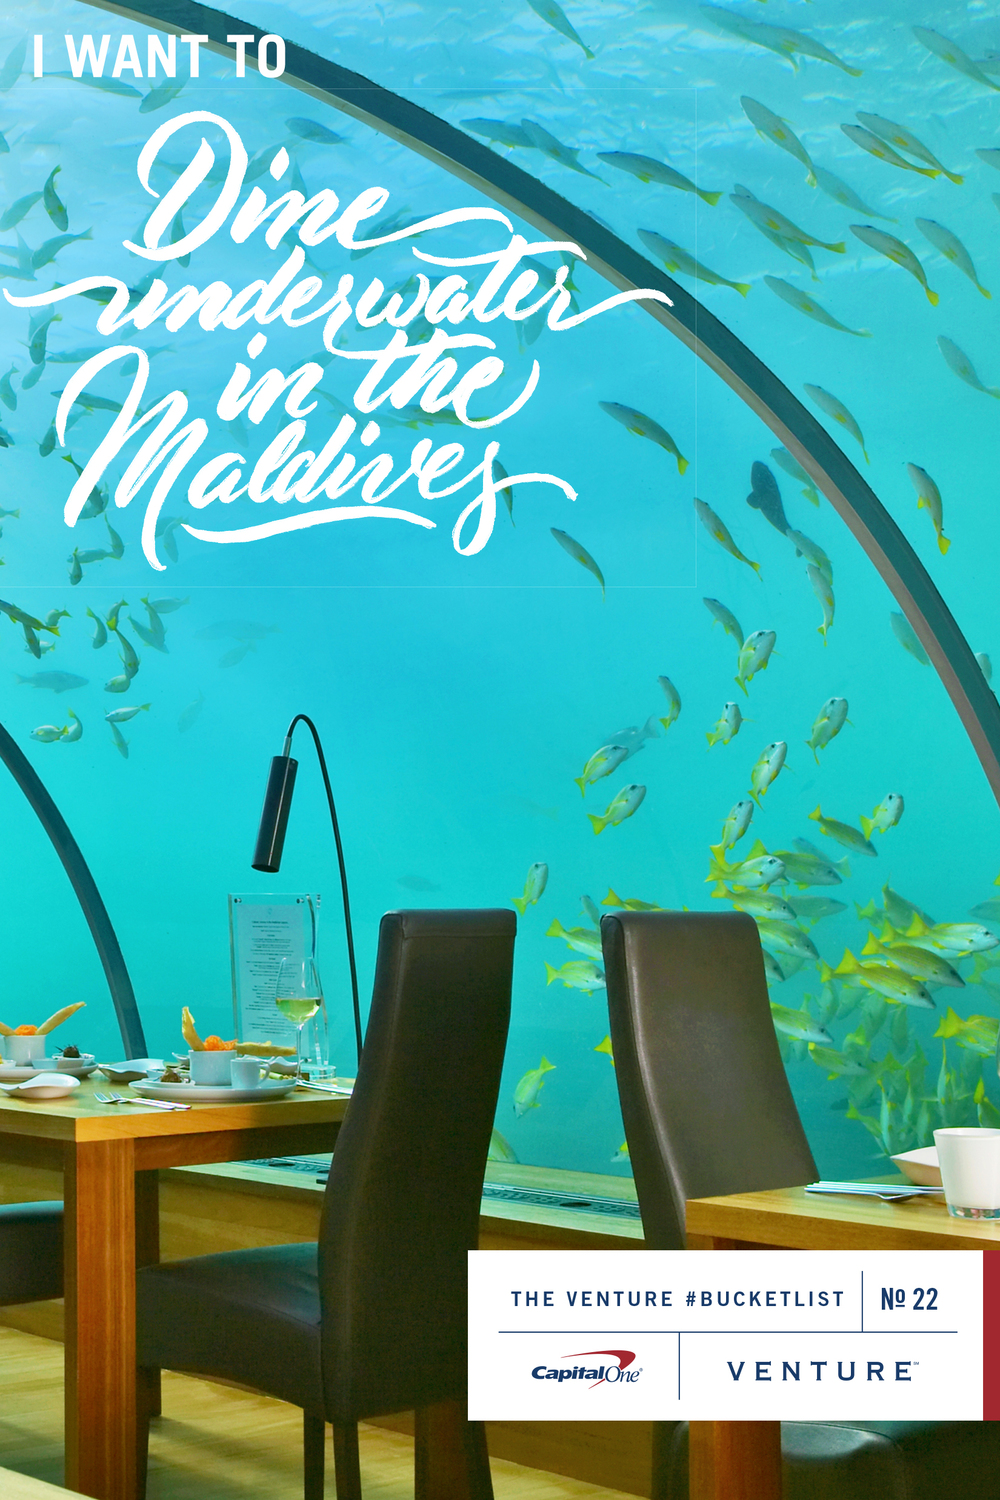 http://venture.tumblr.com/post/55531078860/bucketlist-item-no-12-dine-underwater-in-the